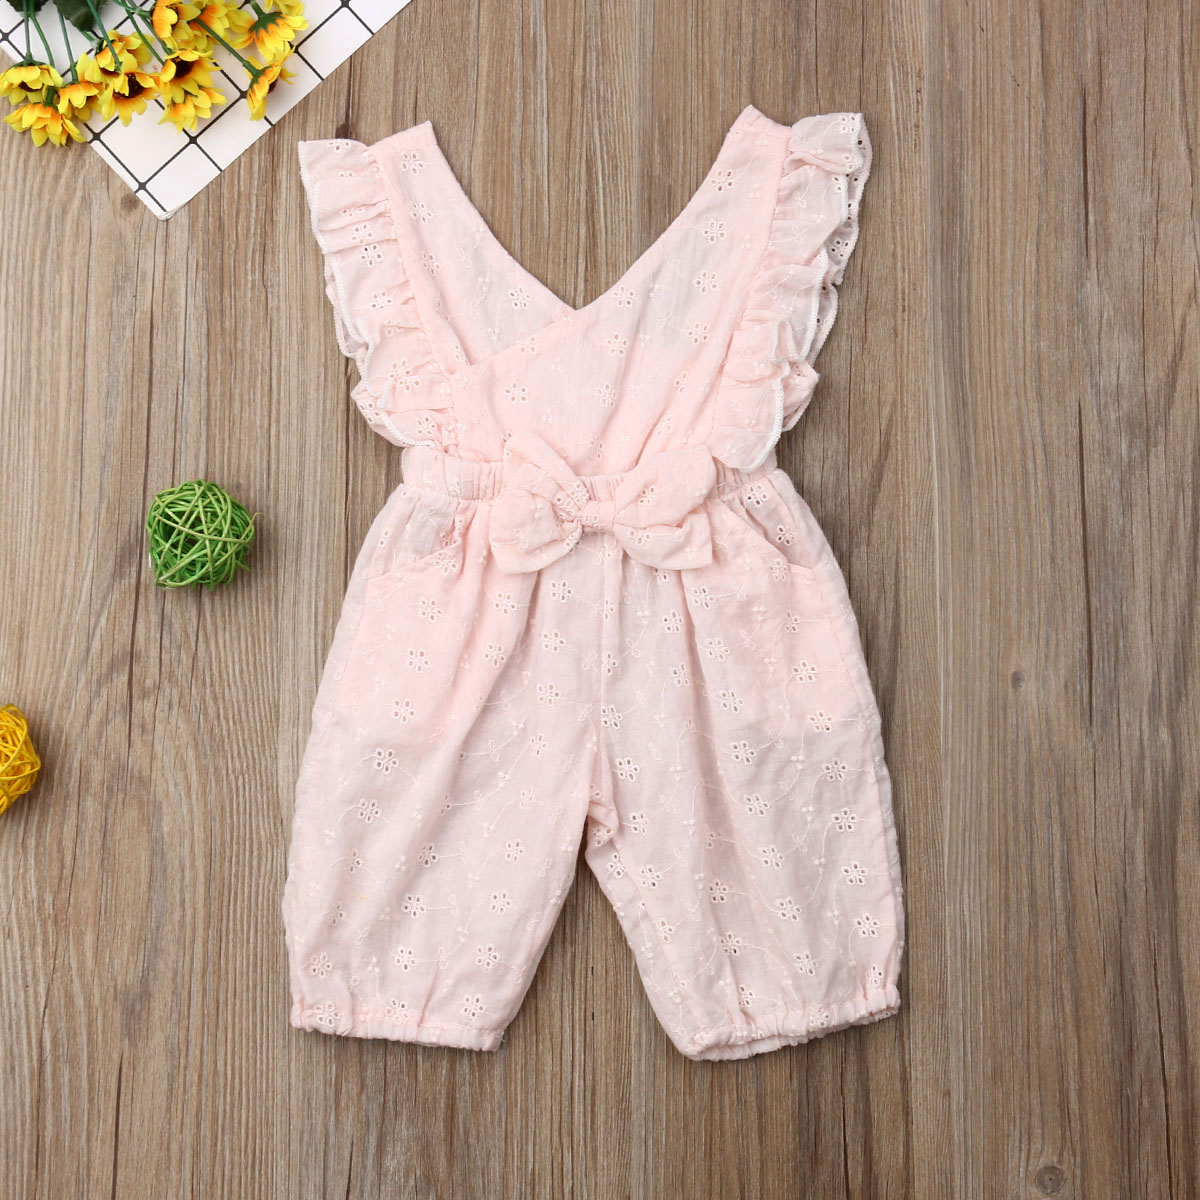 Emmababy Newborn Kids Baby Girl Clothes Fly Sleeve Solid Color Bowknot   Romper   Jumpsuit Outfit Sunsuit